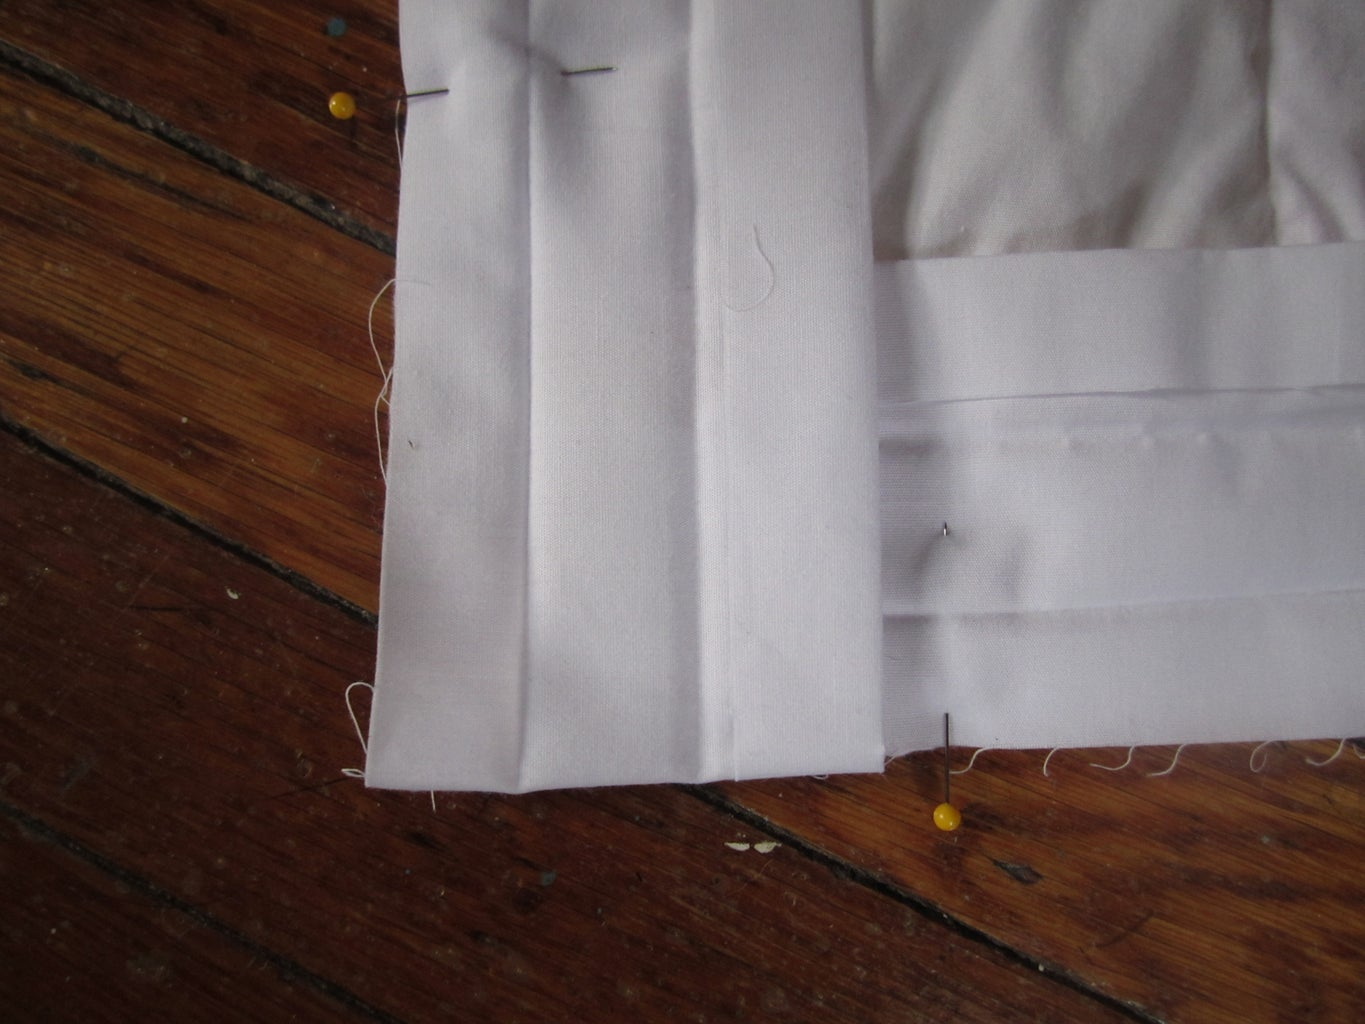 Pinning the Binding to Your Quilt.